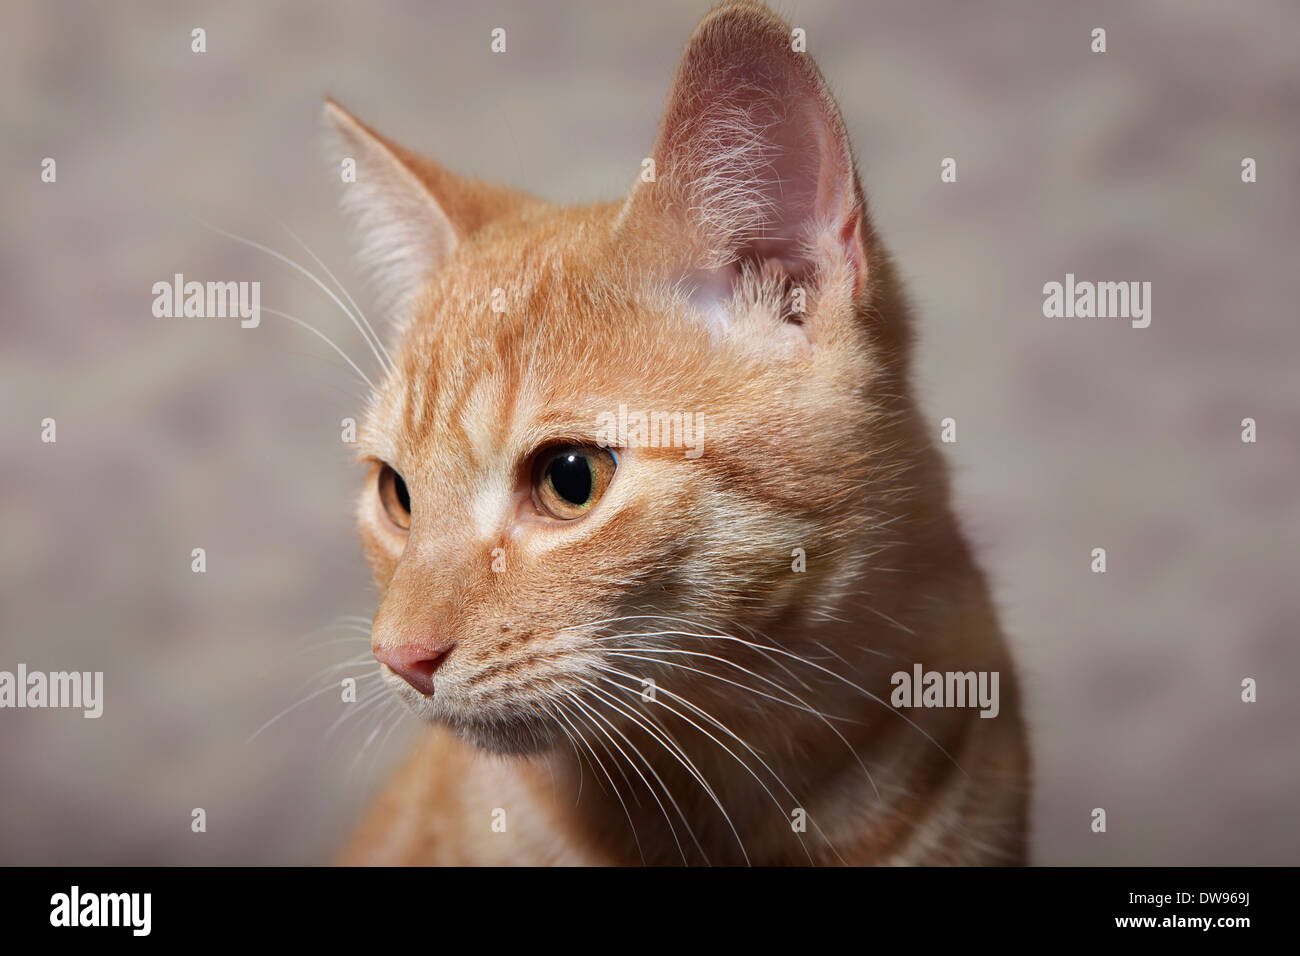 Red tabby domestic cat, circa 6 months, portrait - Stock Image